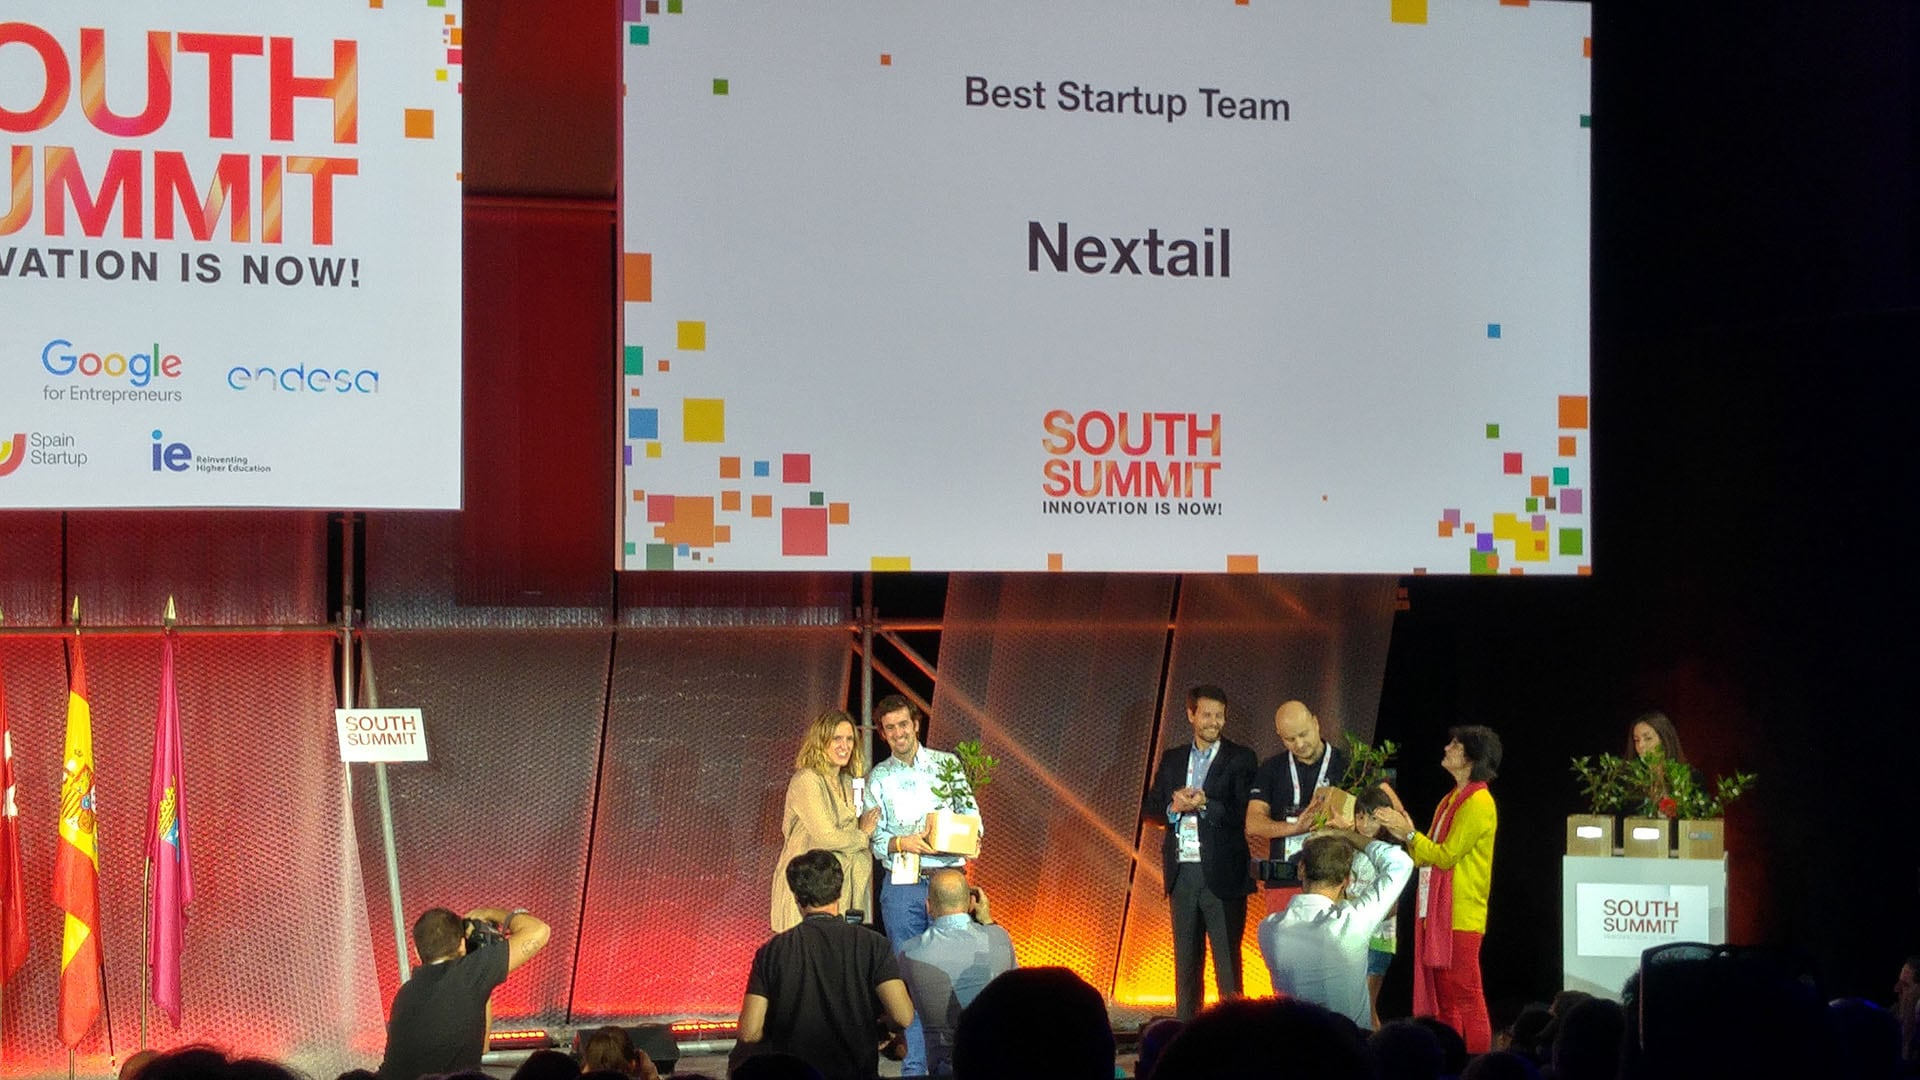 Nextail Best Team and Best Lifestyle & Fashion startup at South Summit